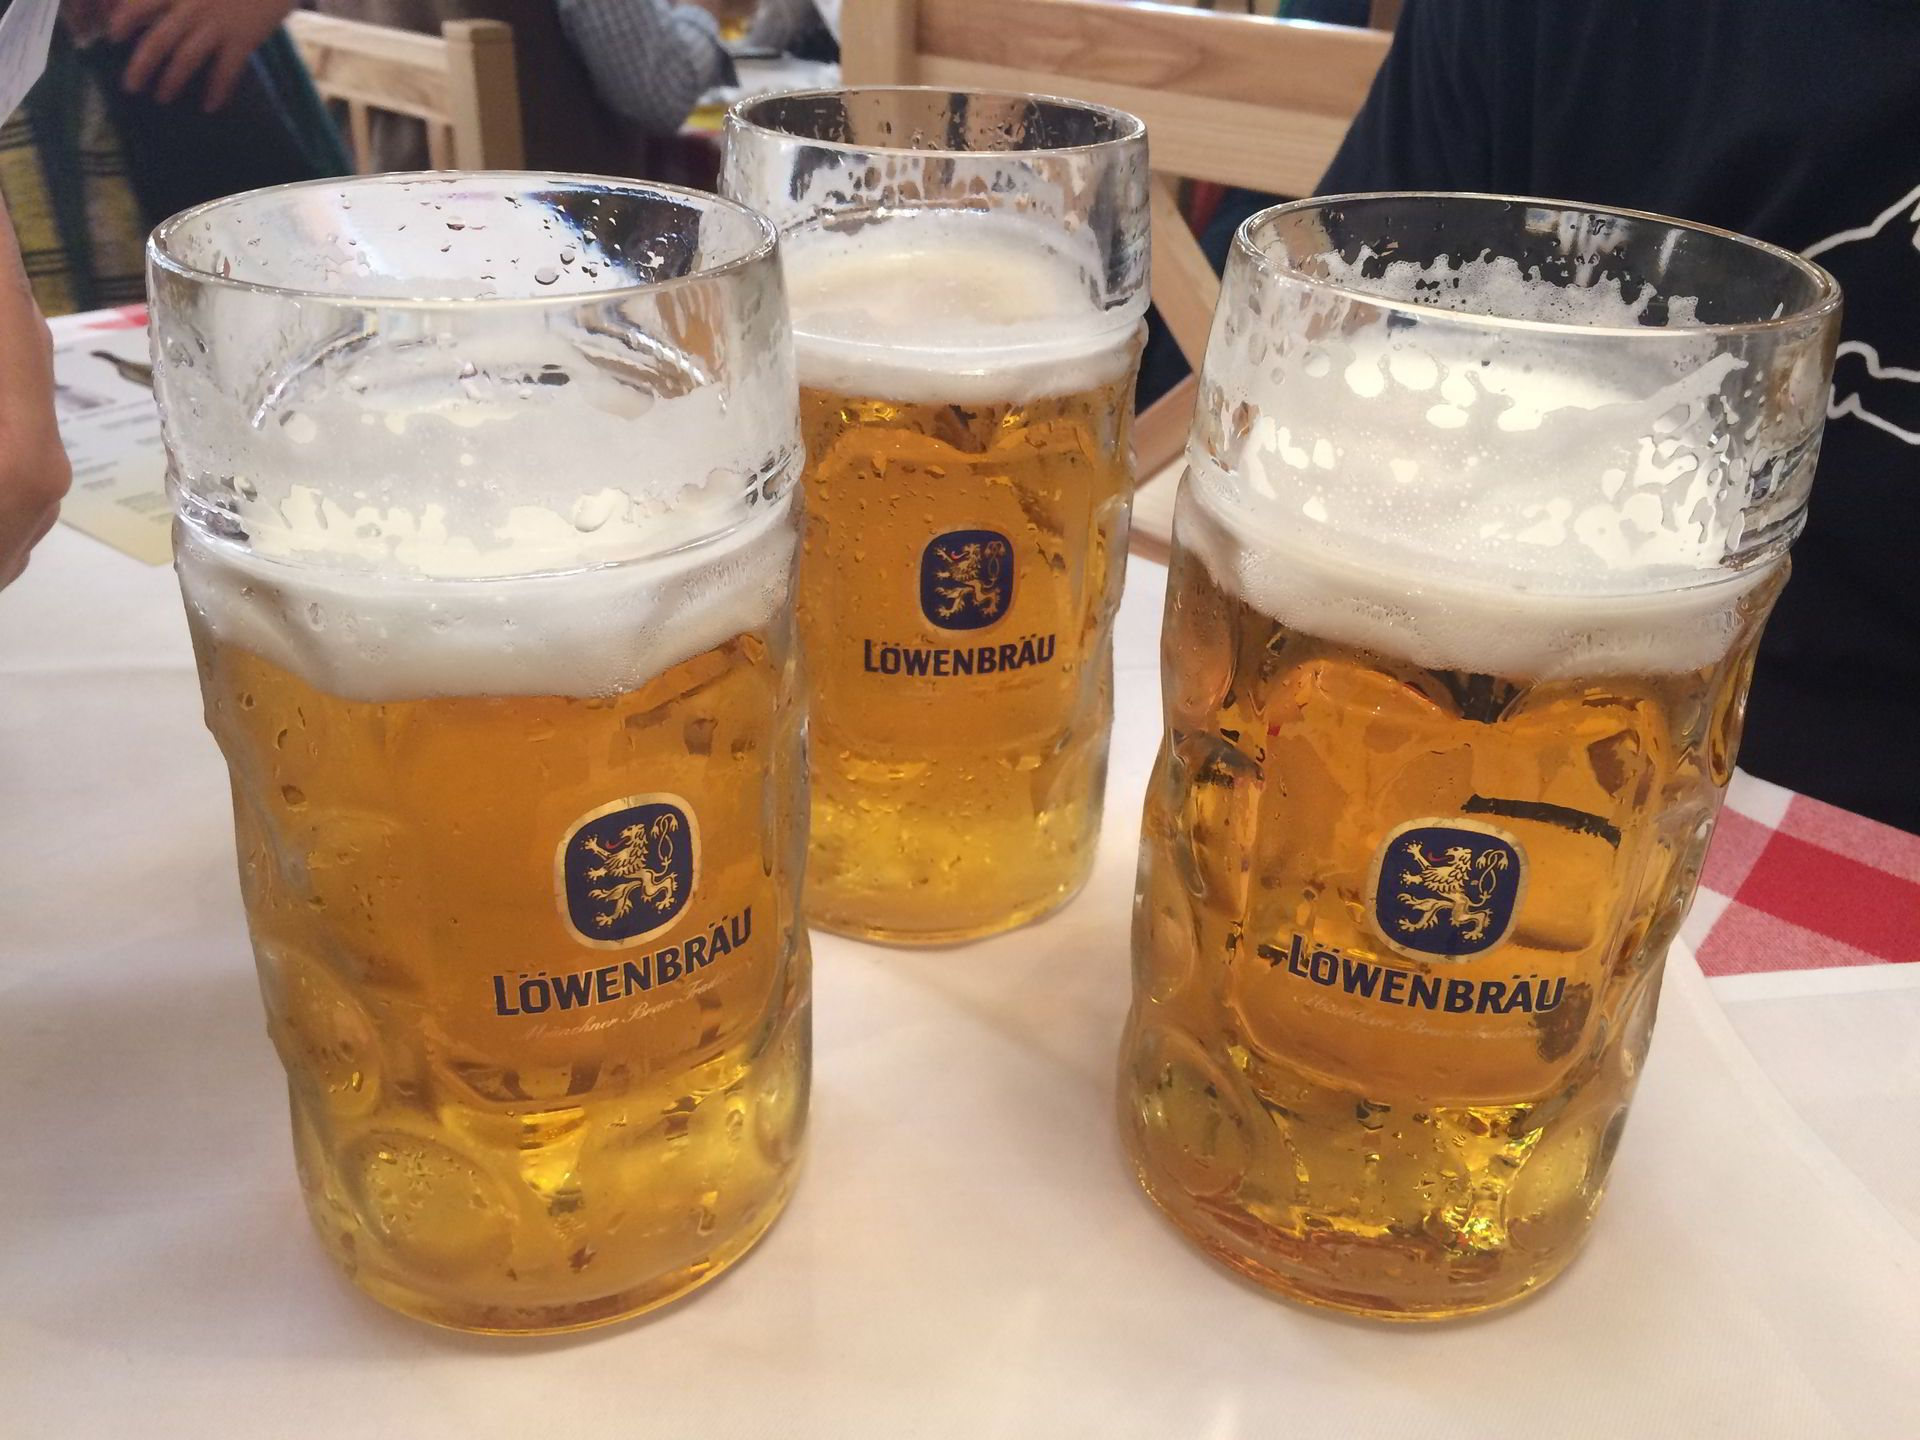 1 Liter Beer at Oktoberfest Munich Germany 2017